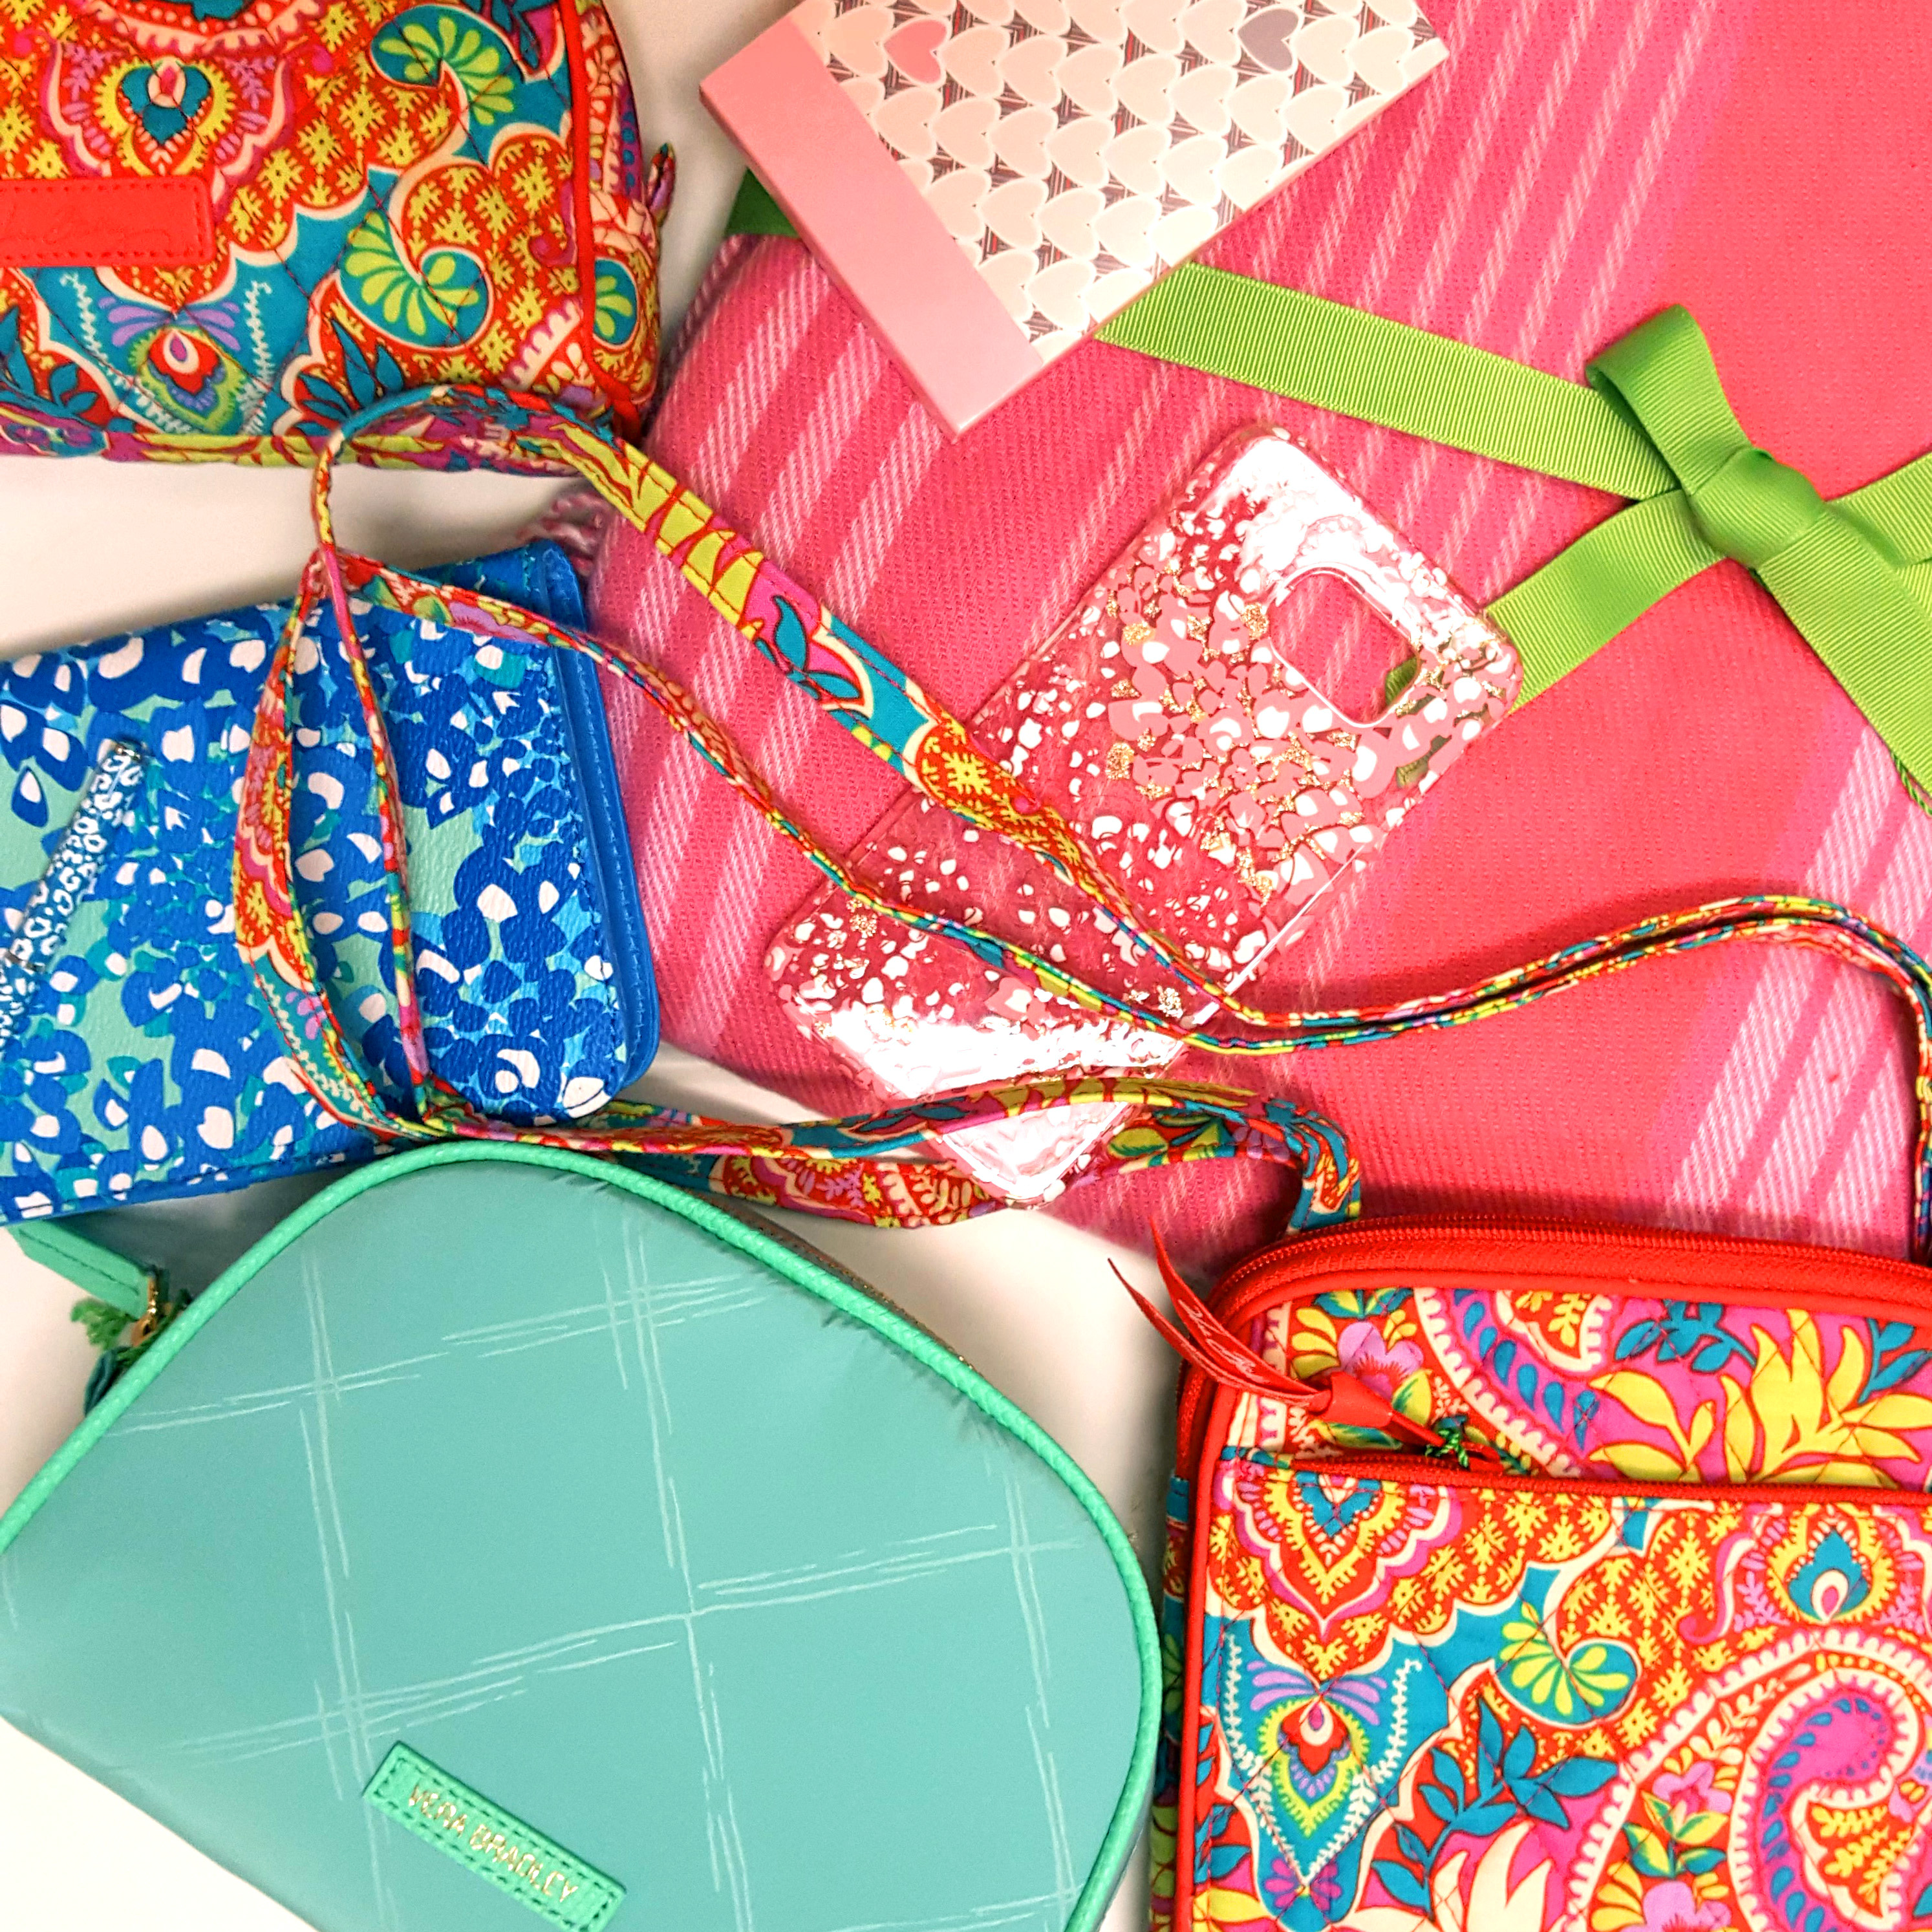 assortment of Vera Bradley items